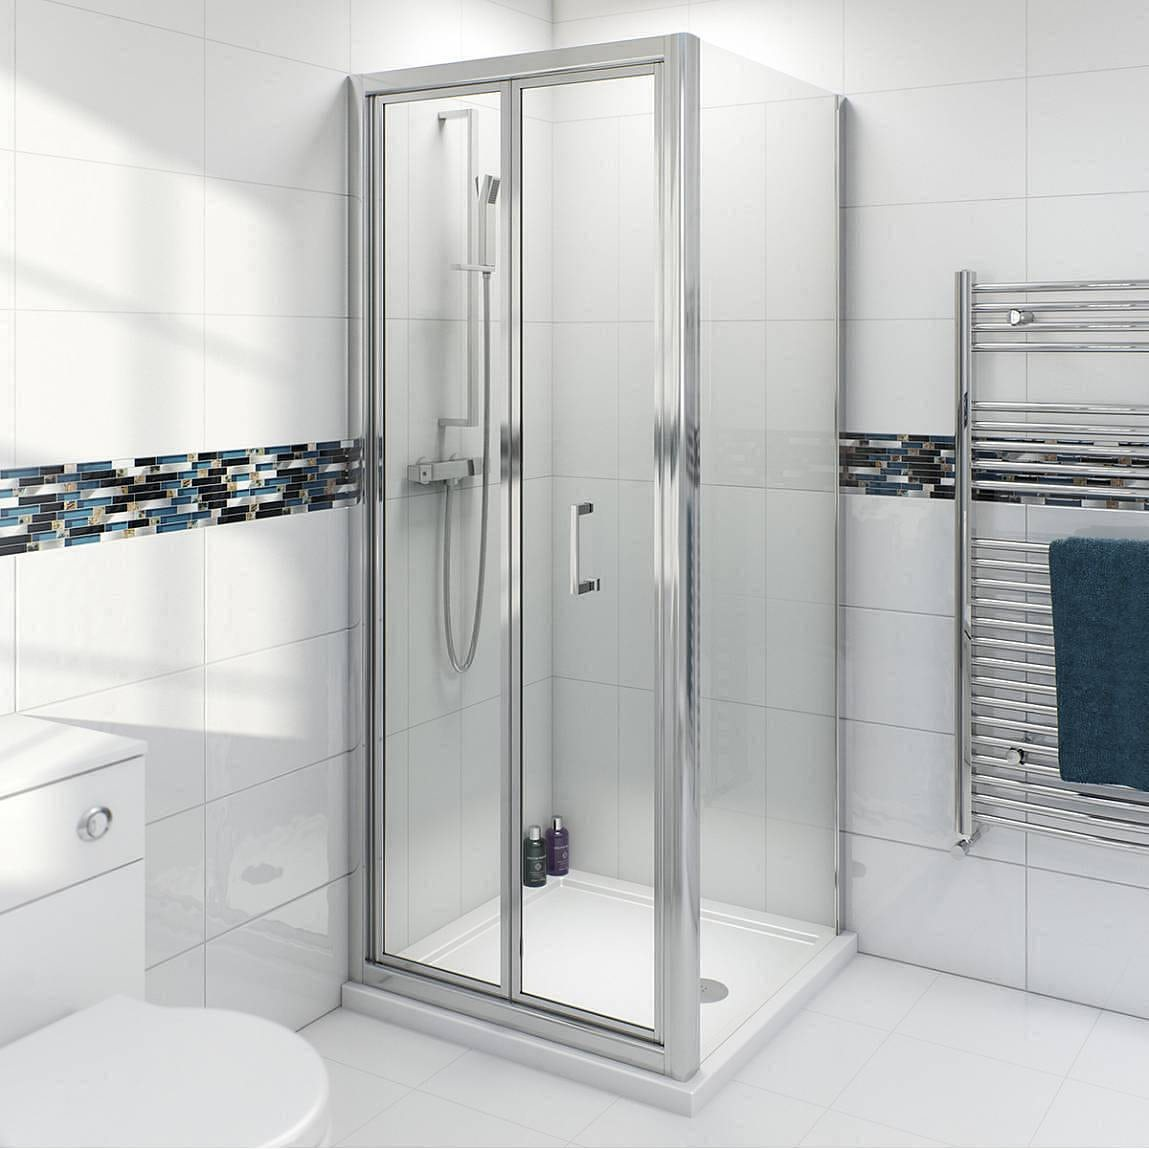 Clarity 4mm bifold door square shower enclosure